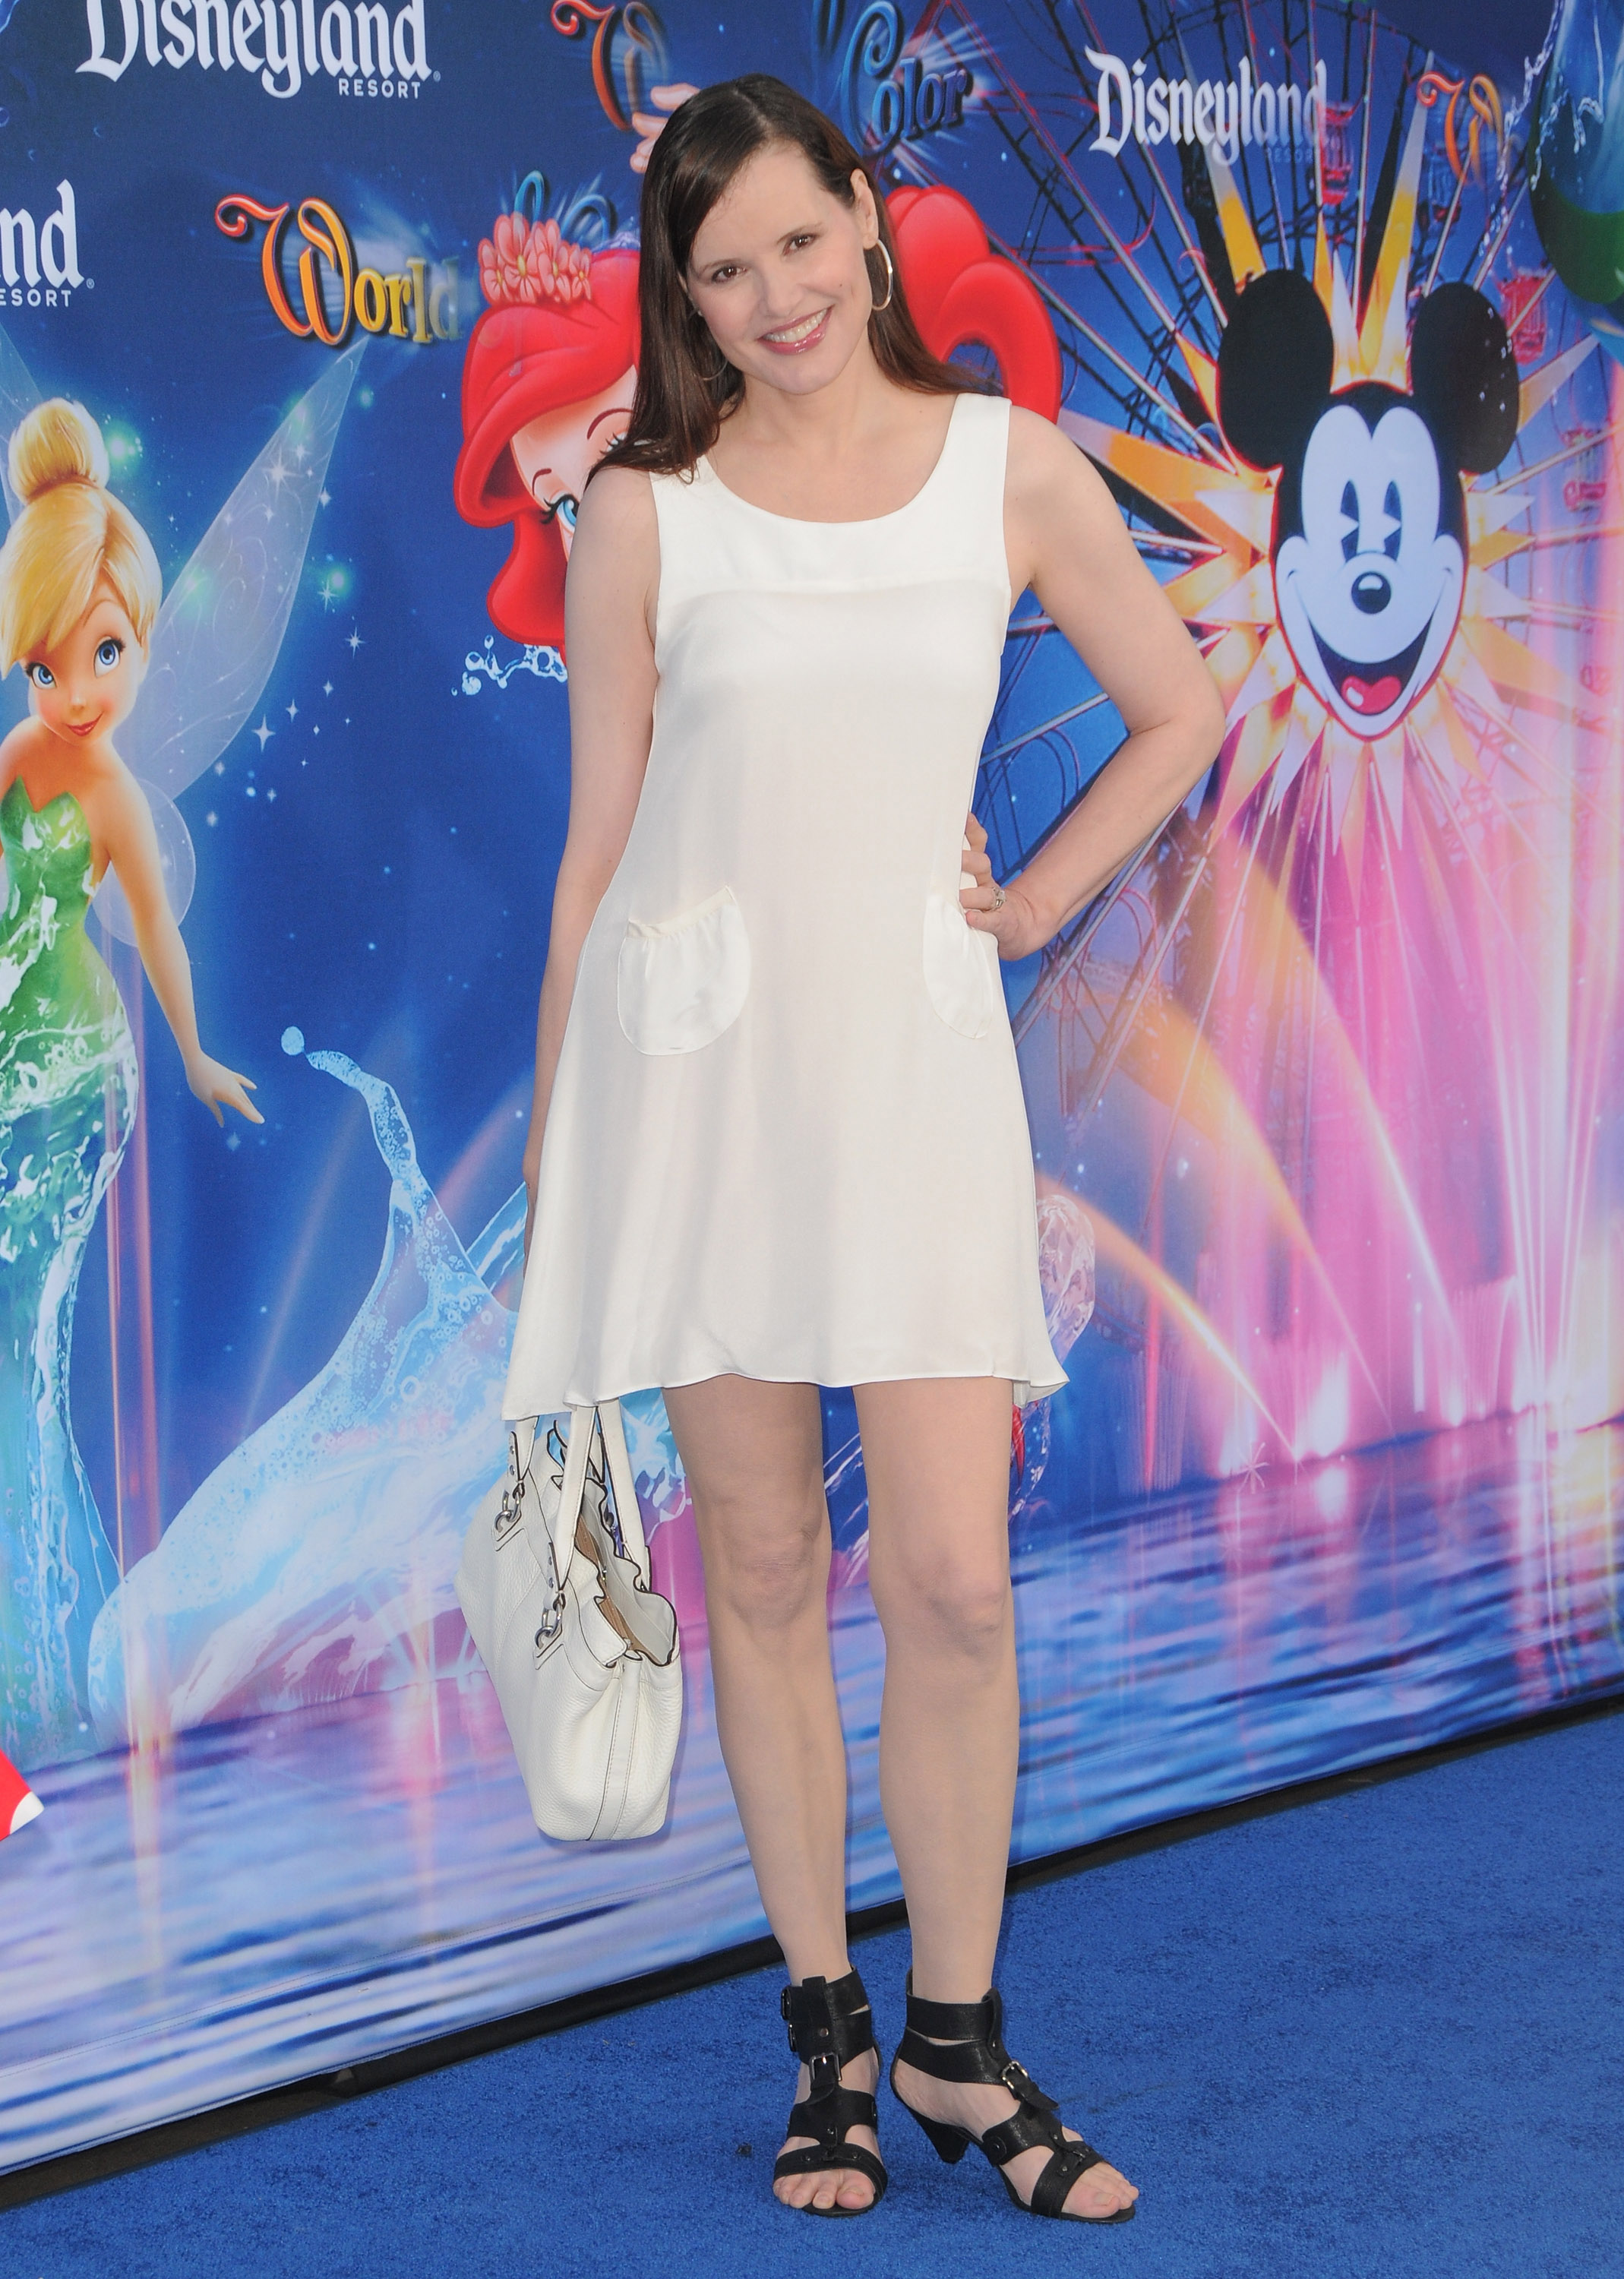 64492_GeenaDavis_world_of_color_disneyland_debut_16_122_567lo.jpg